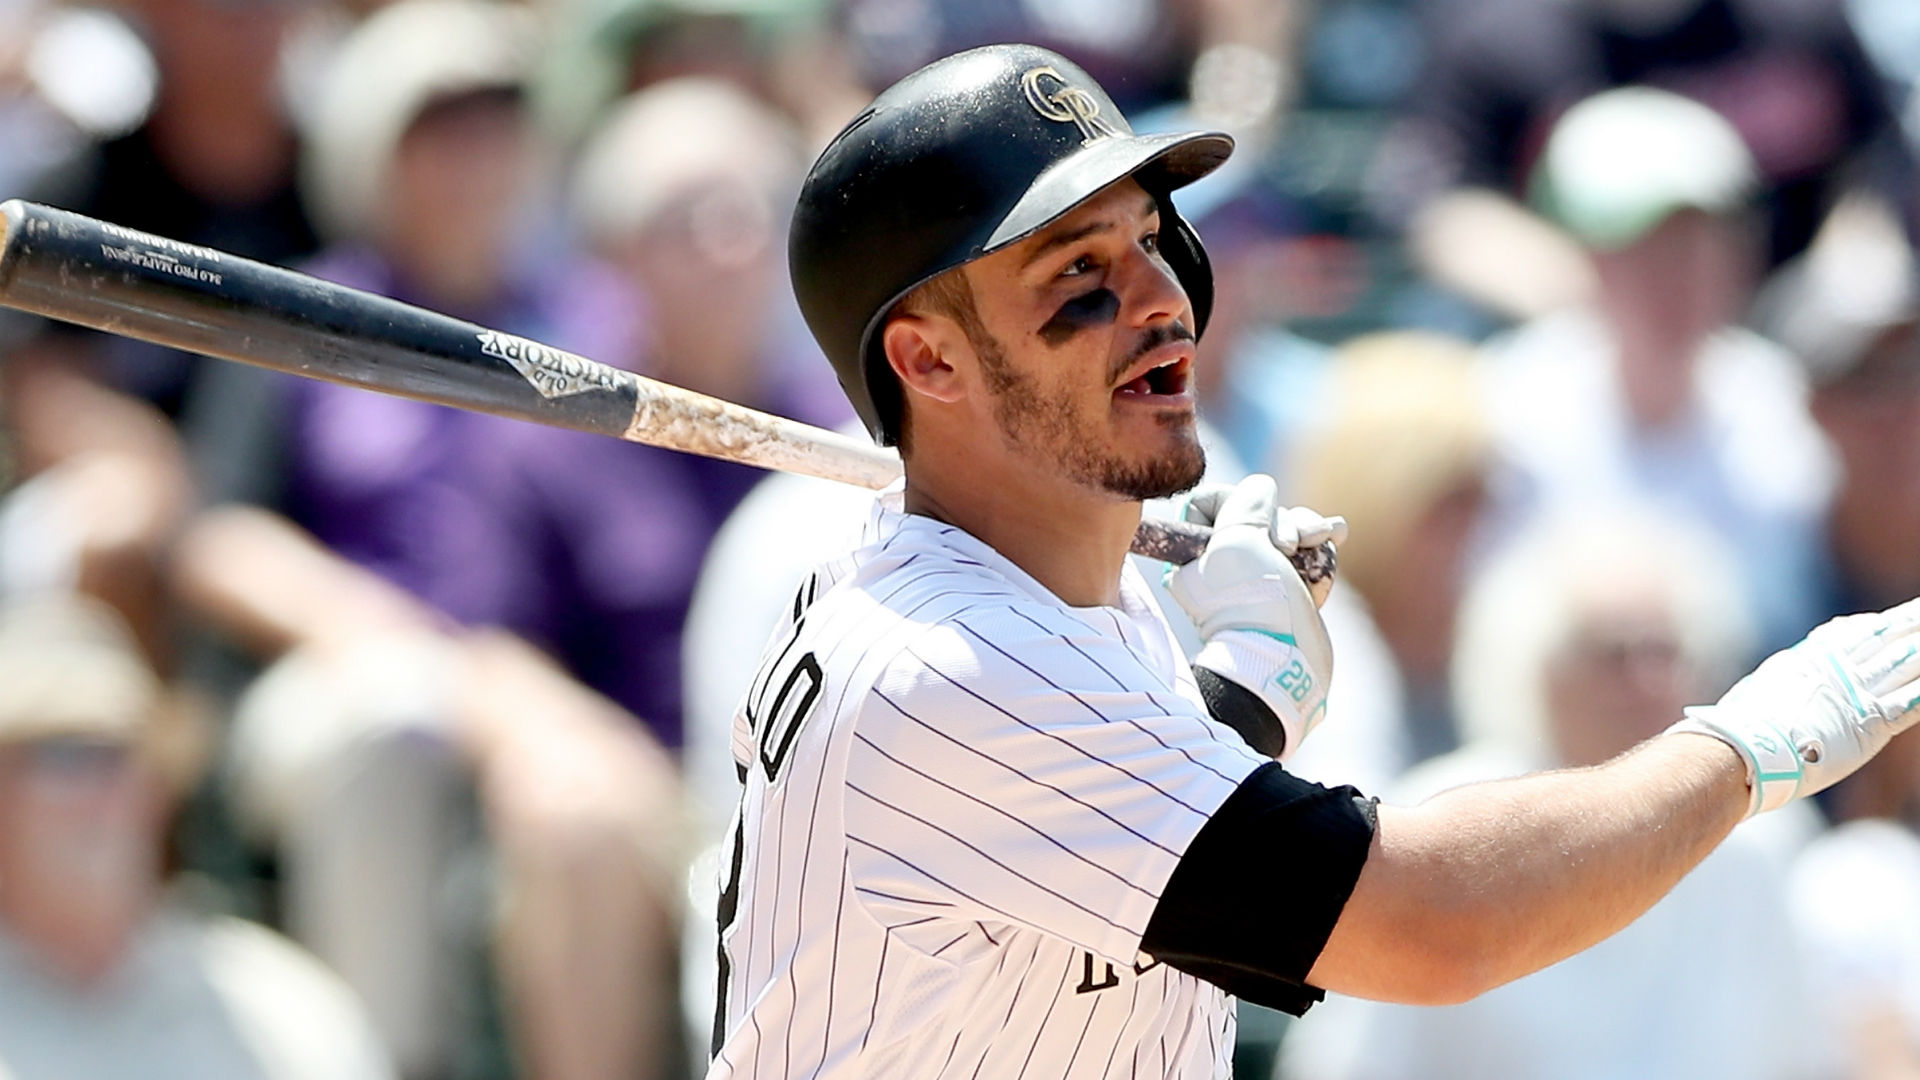 Nolan Arenado completes cycle with walk-off homer